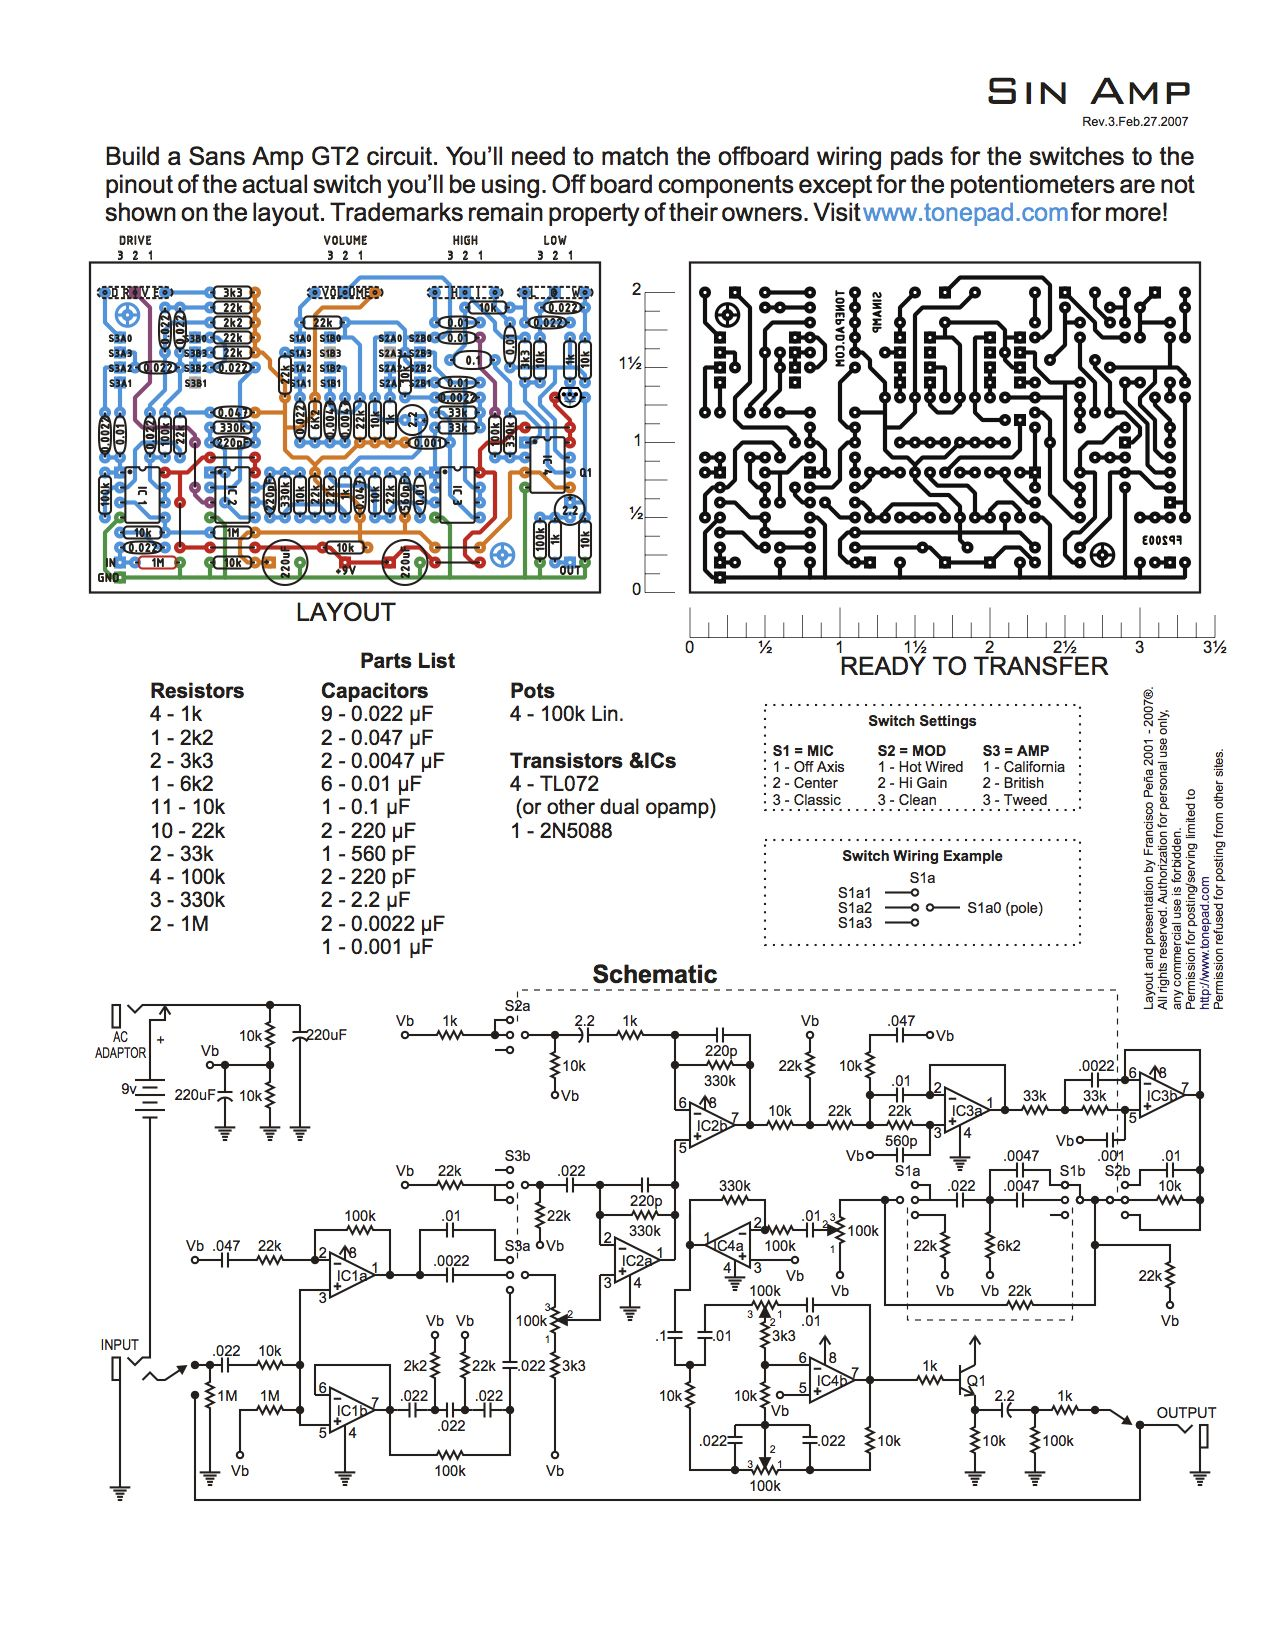 Build A Sans Amp Gt2 Circuit Circuits Pinterest Guitar Pin Way Switch Wiring Diagram Electrical On